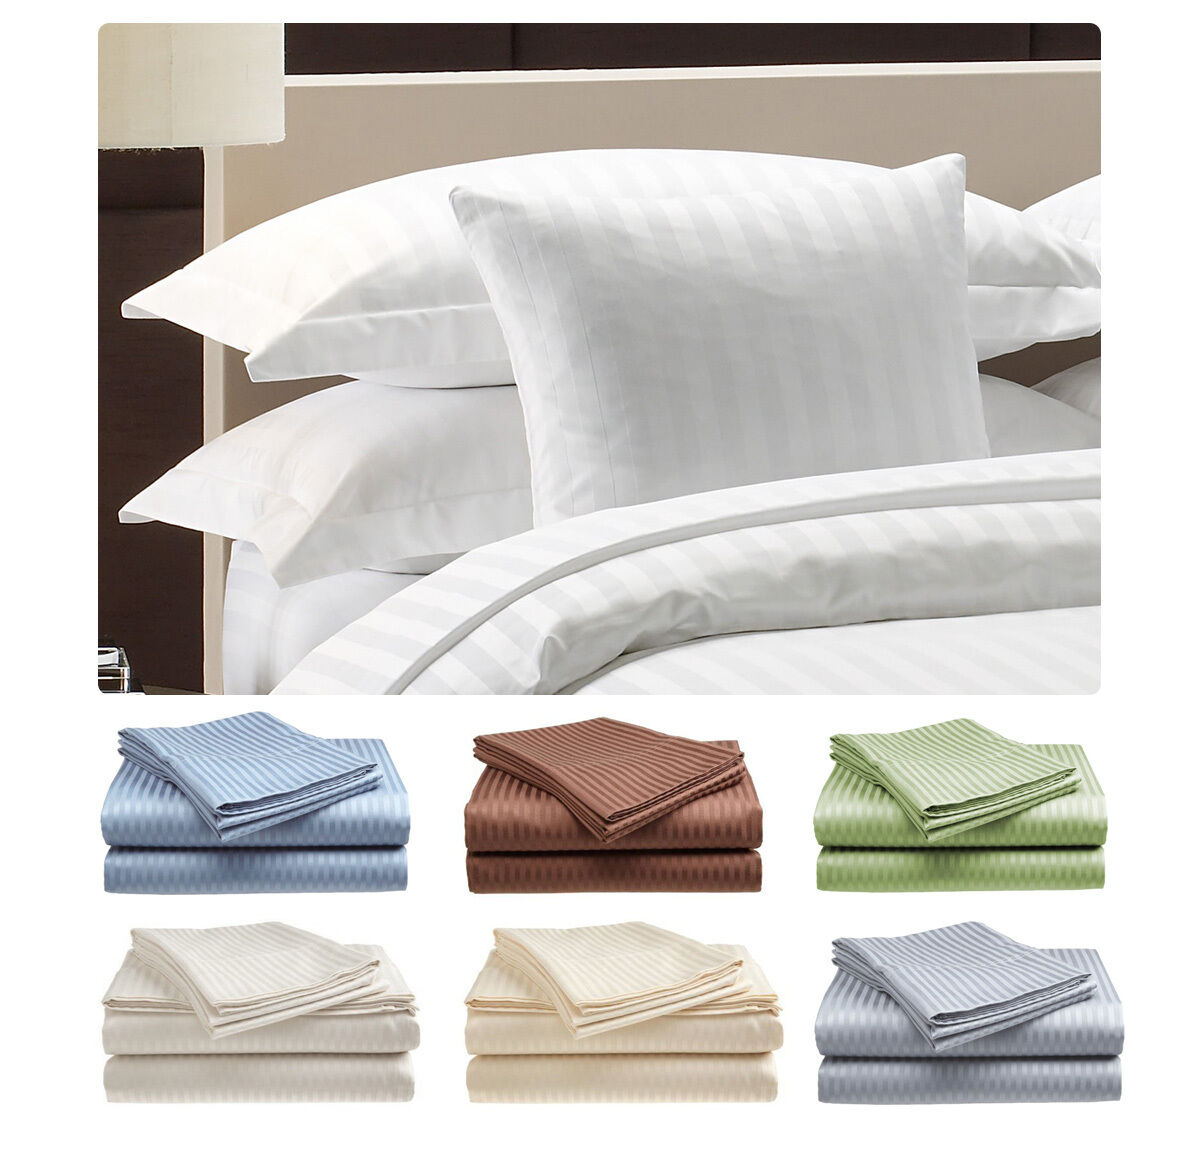 Pure 100% Egyptian Cotton 300 Thread Count Extra Soft Bed Sheets & Pillow Cases